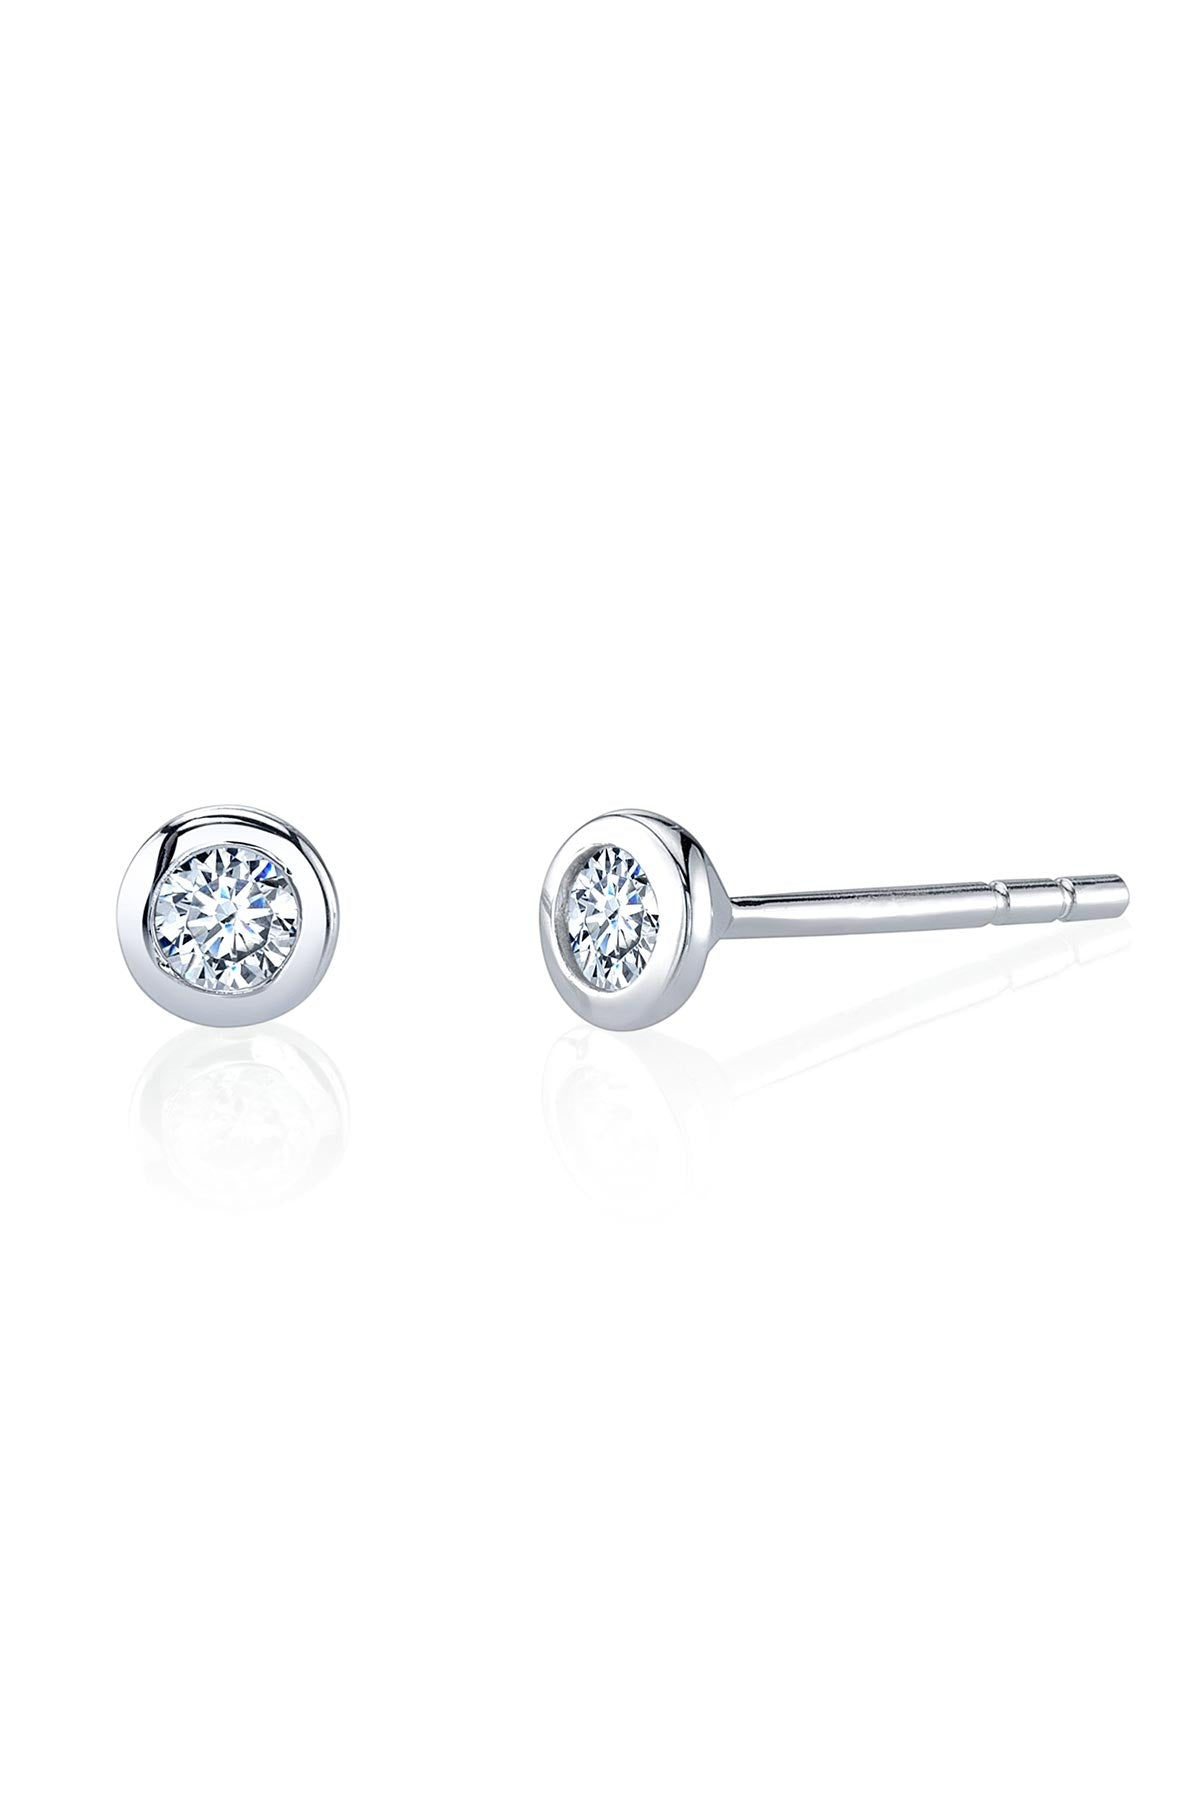 SIMPLE STUDS IN SILVER BY SLOAN